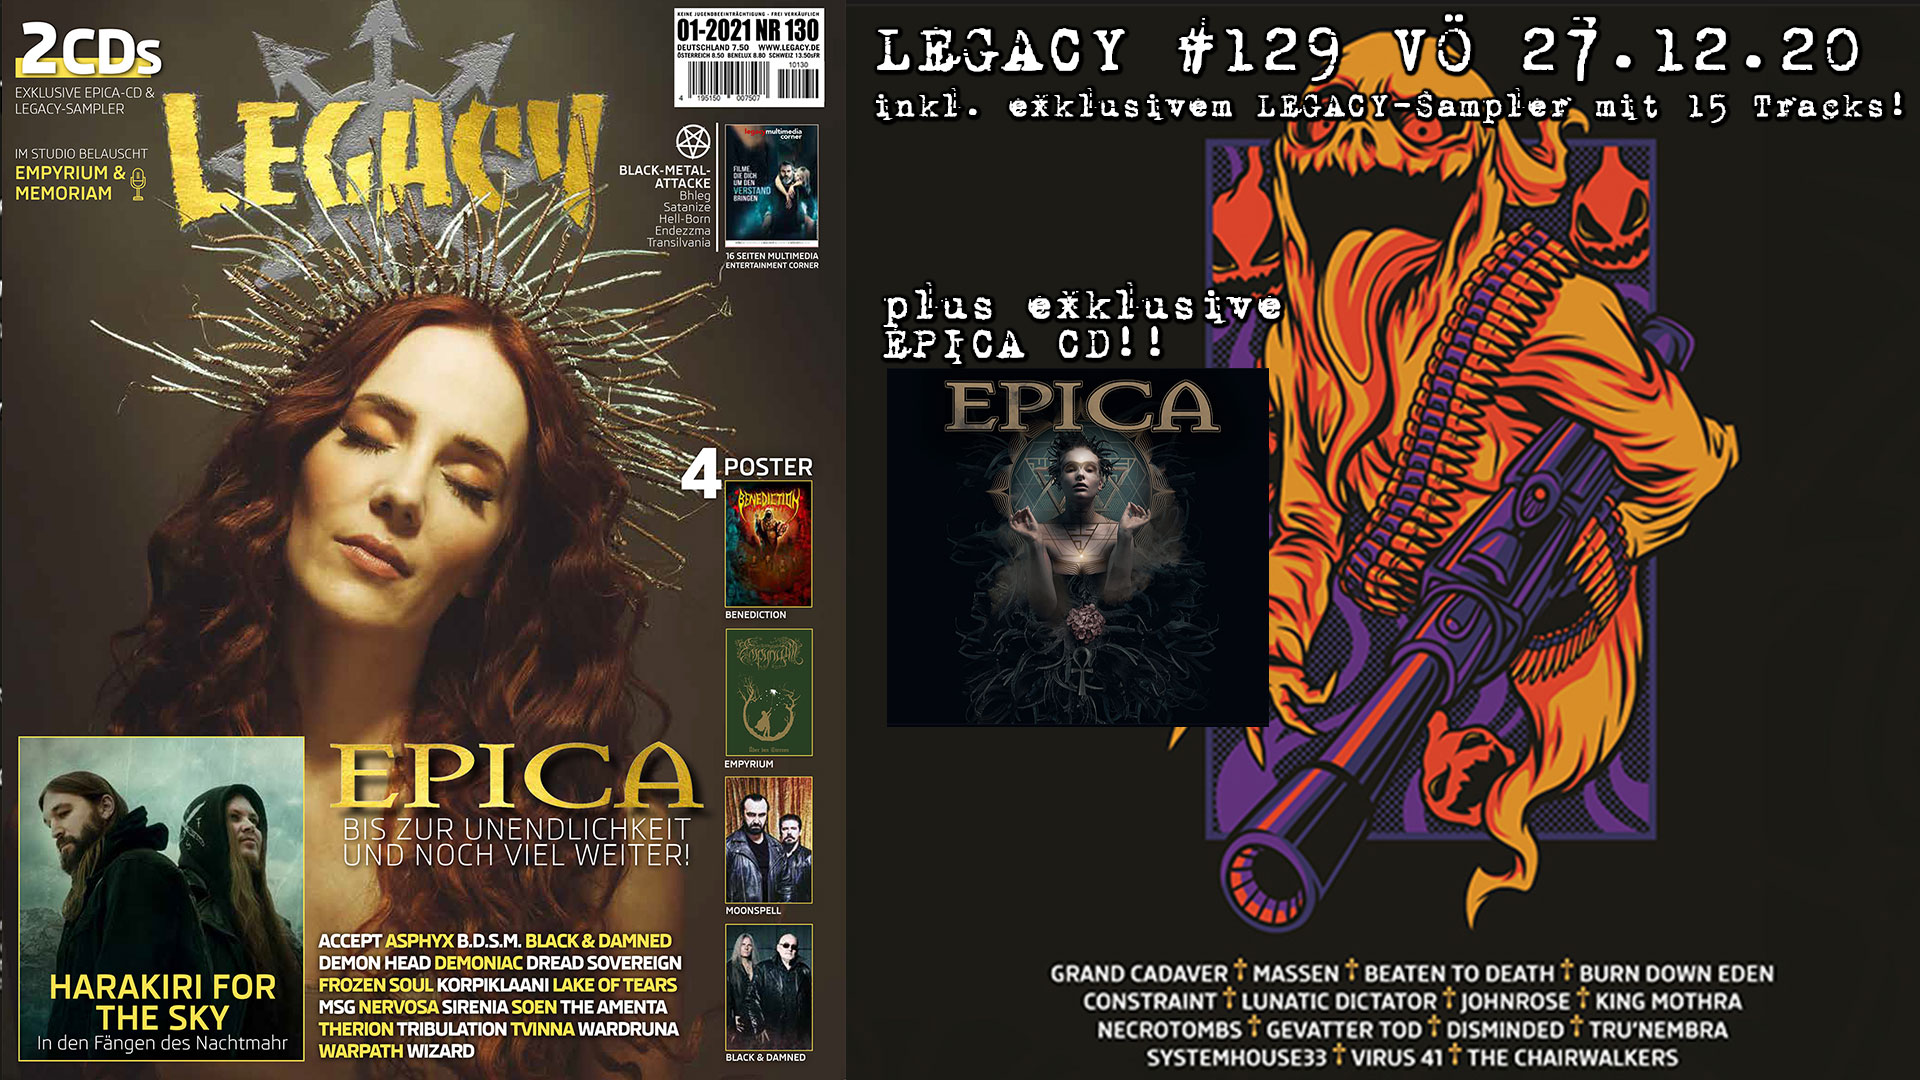 LEGACY #130 out 27.12.2020